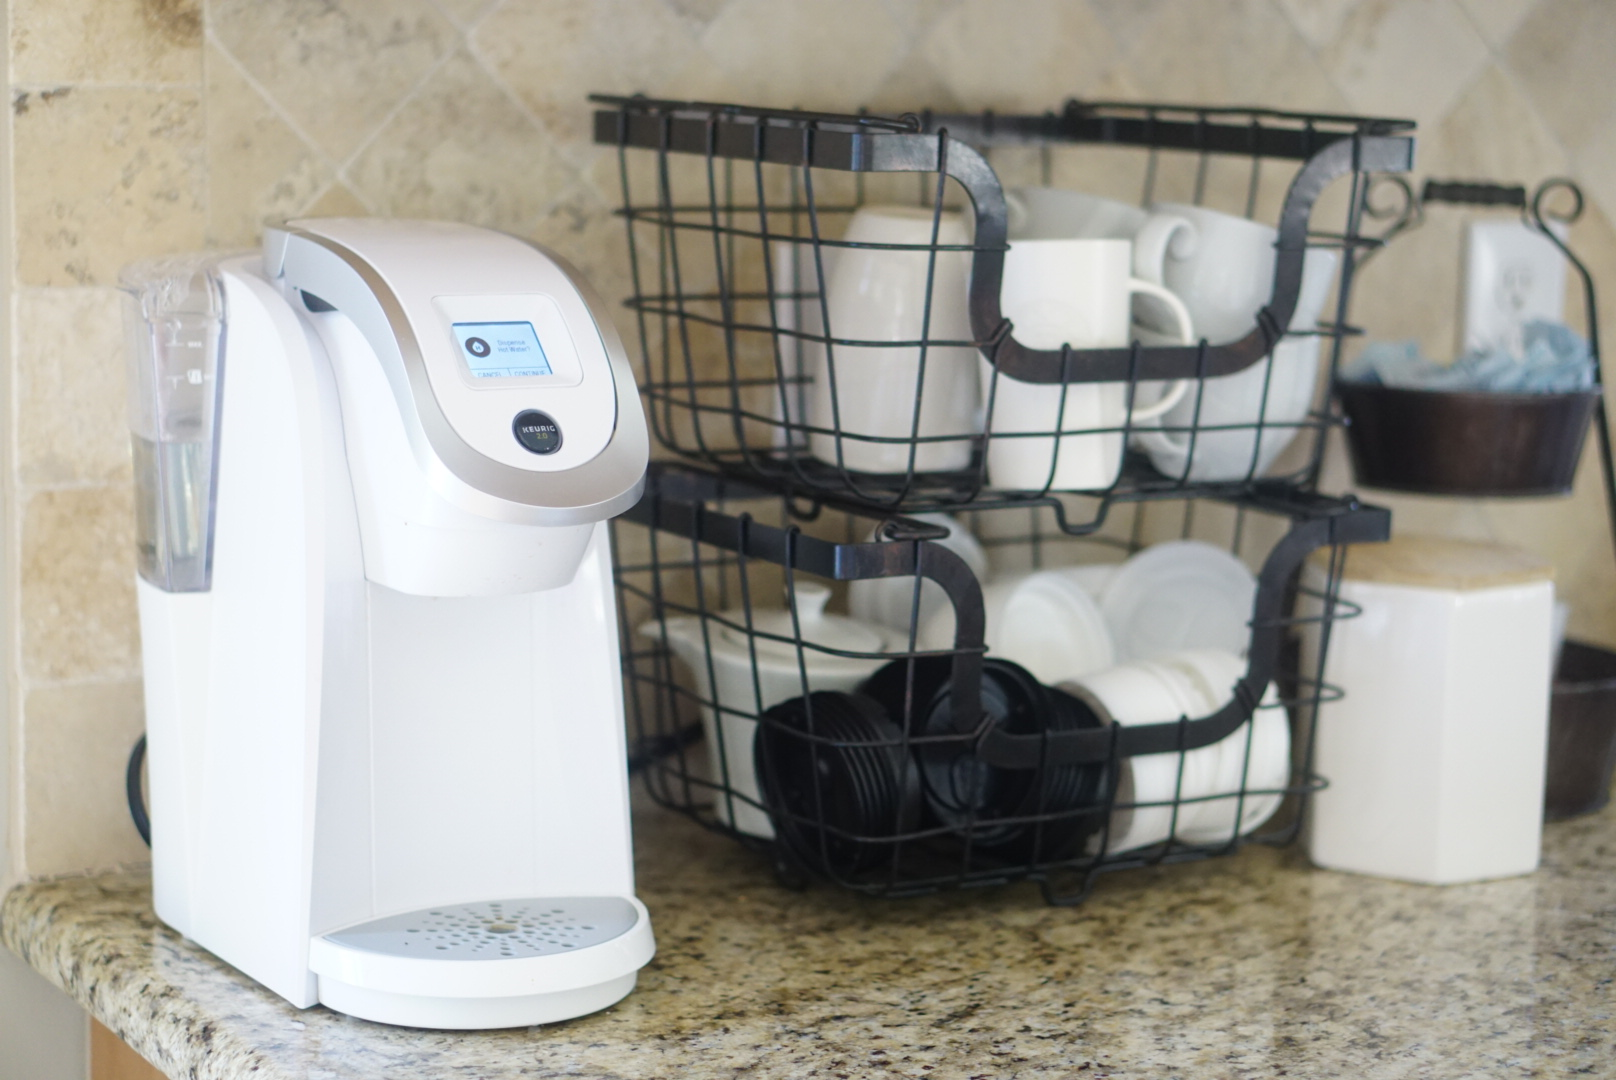 Kitchen Essentials - Keurig Coffee Maker - Shop For no eBay - ebay home goods via Misty Nelson, lifestyle blogger ad parenting influencer mom at frostedblog @frostedevents